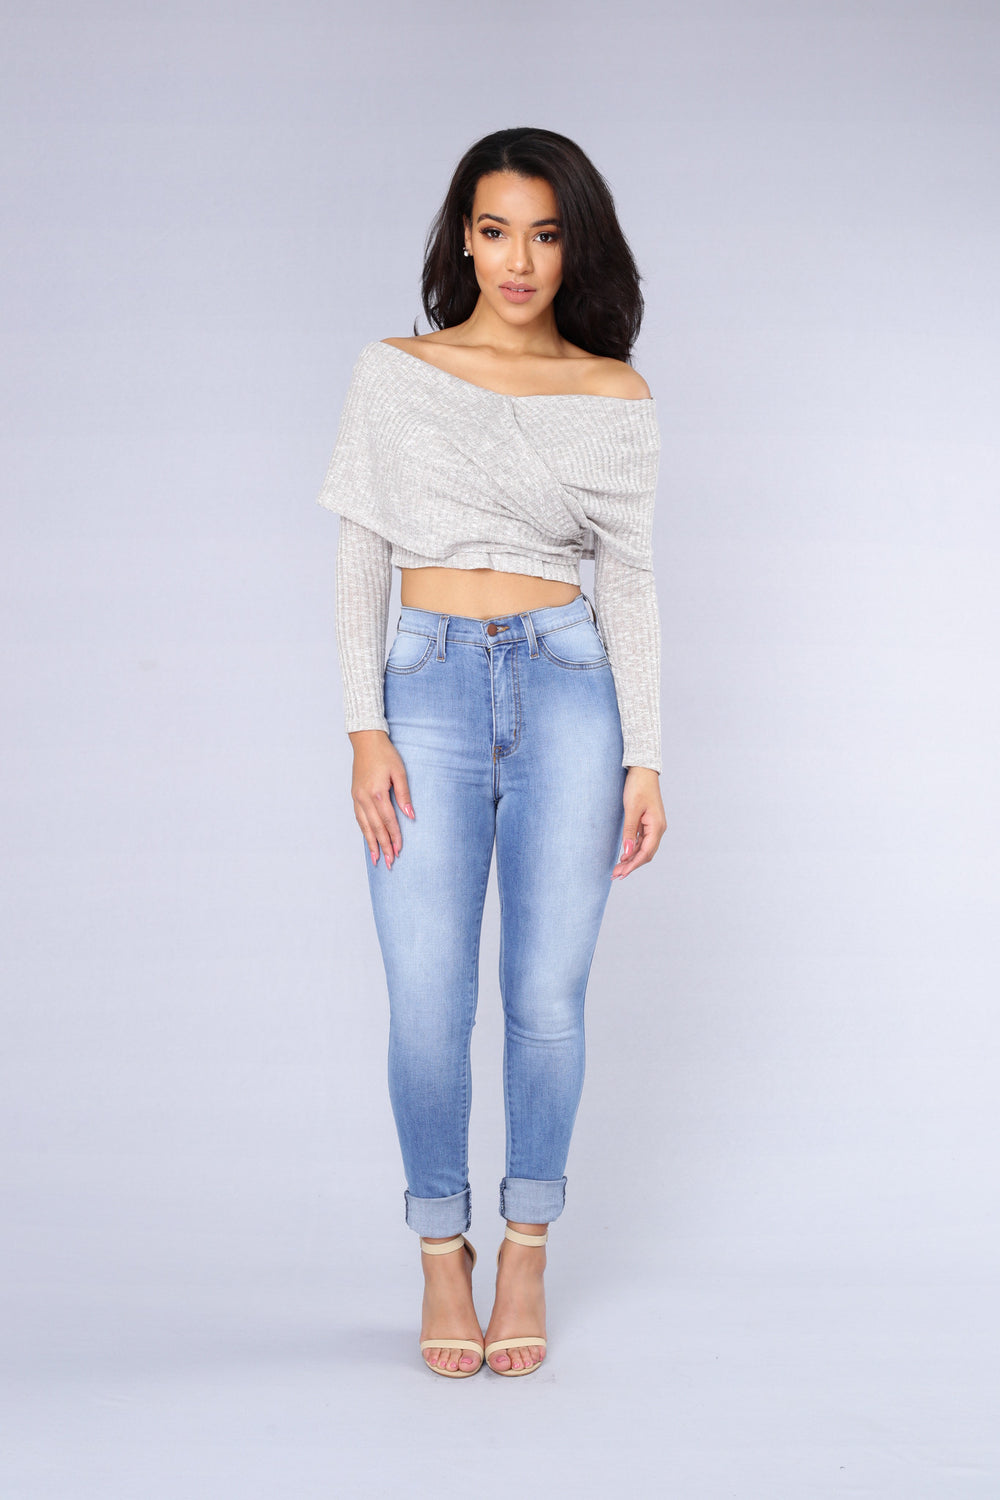 Grotto Top - Light Grey